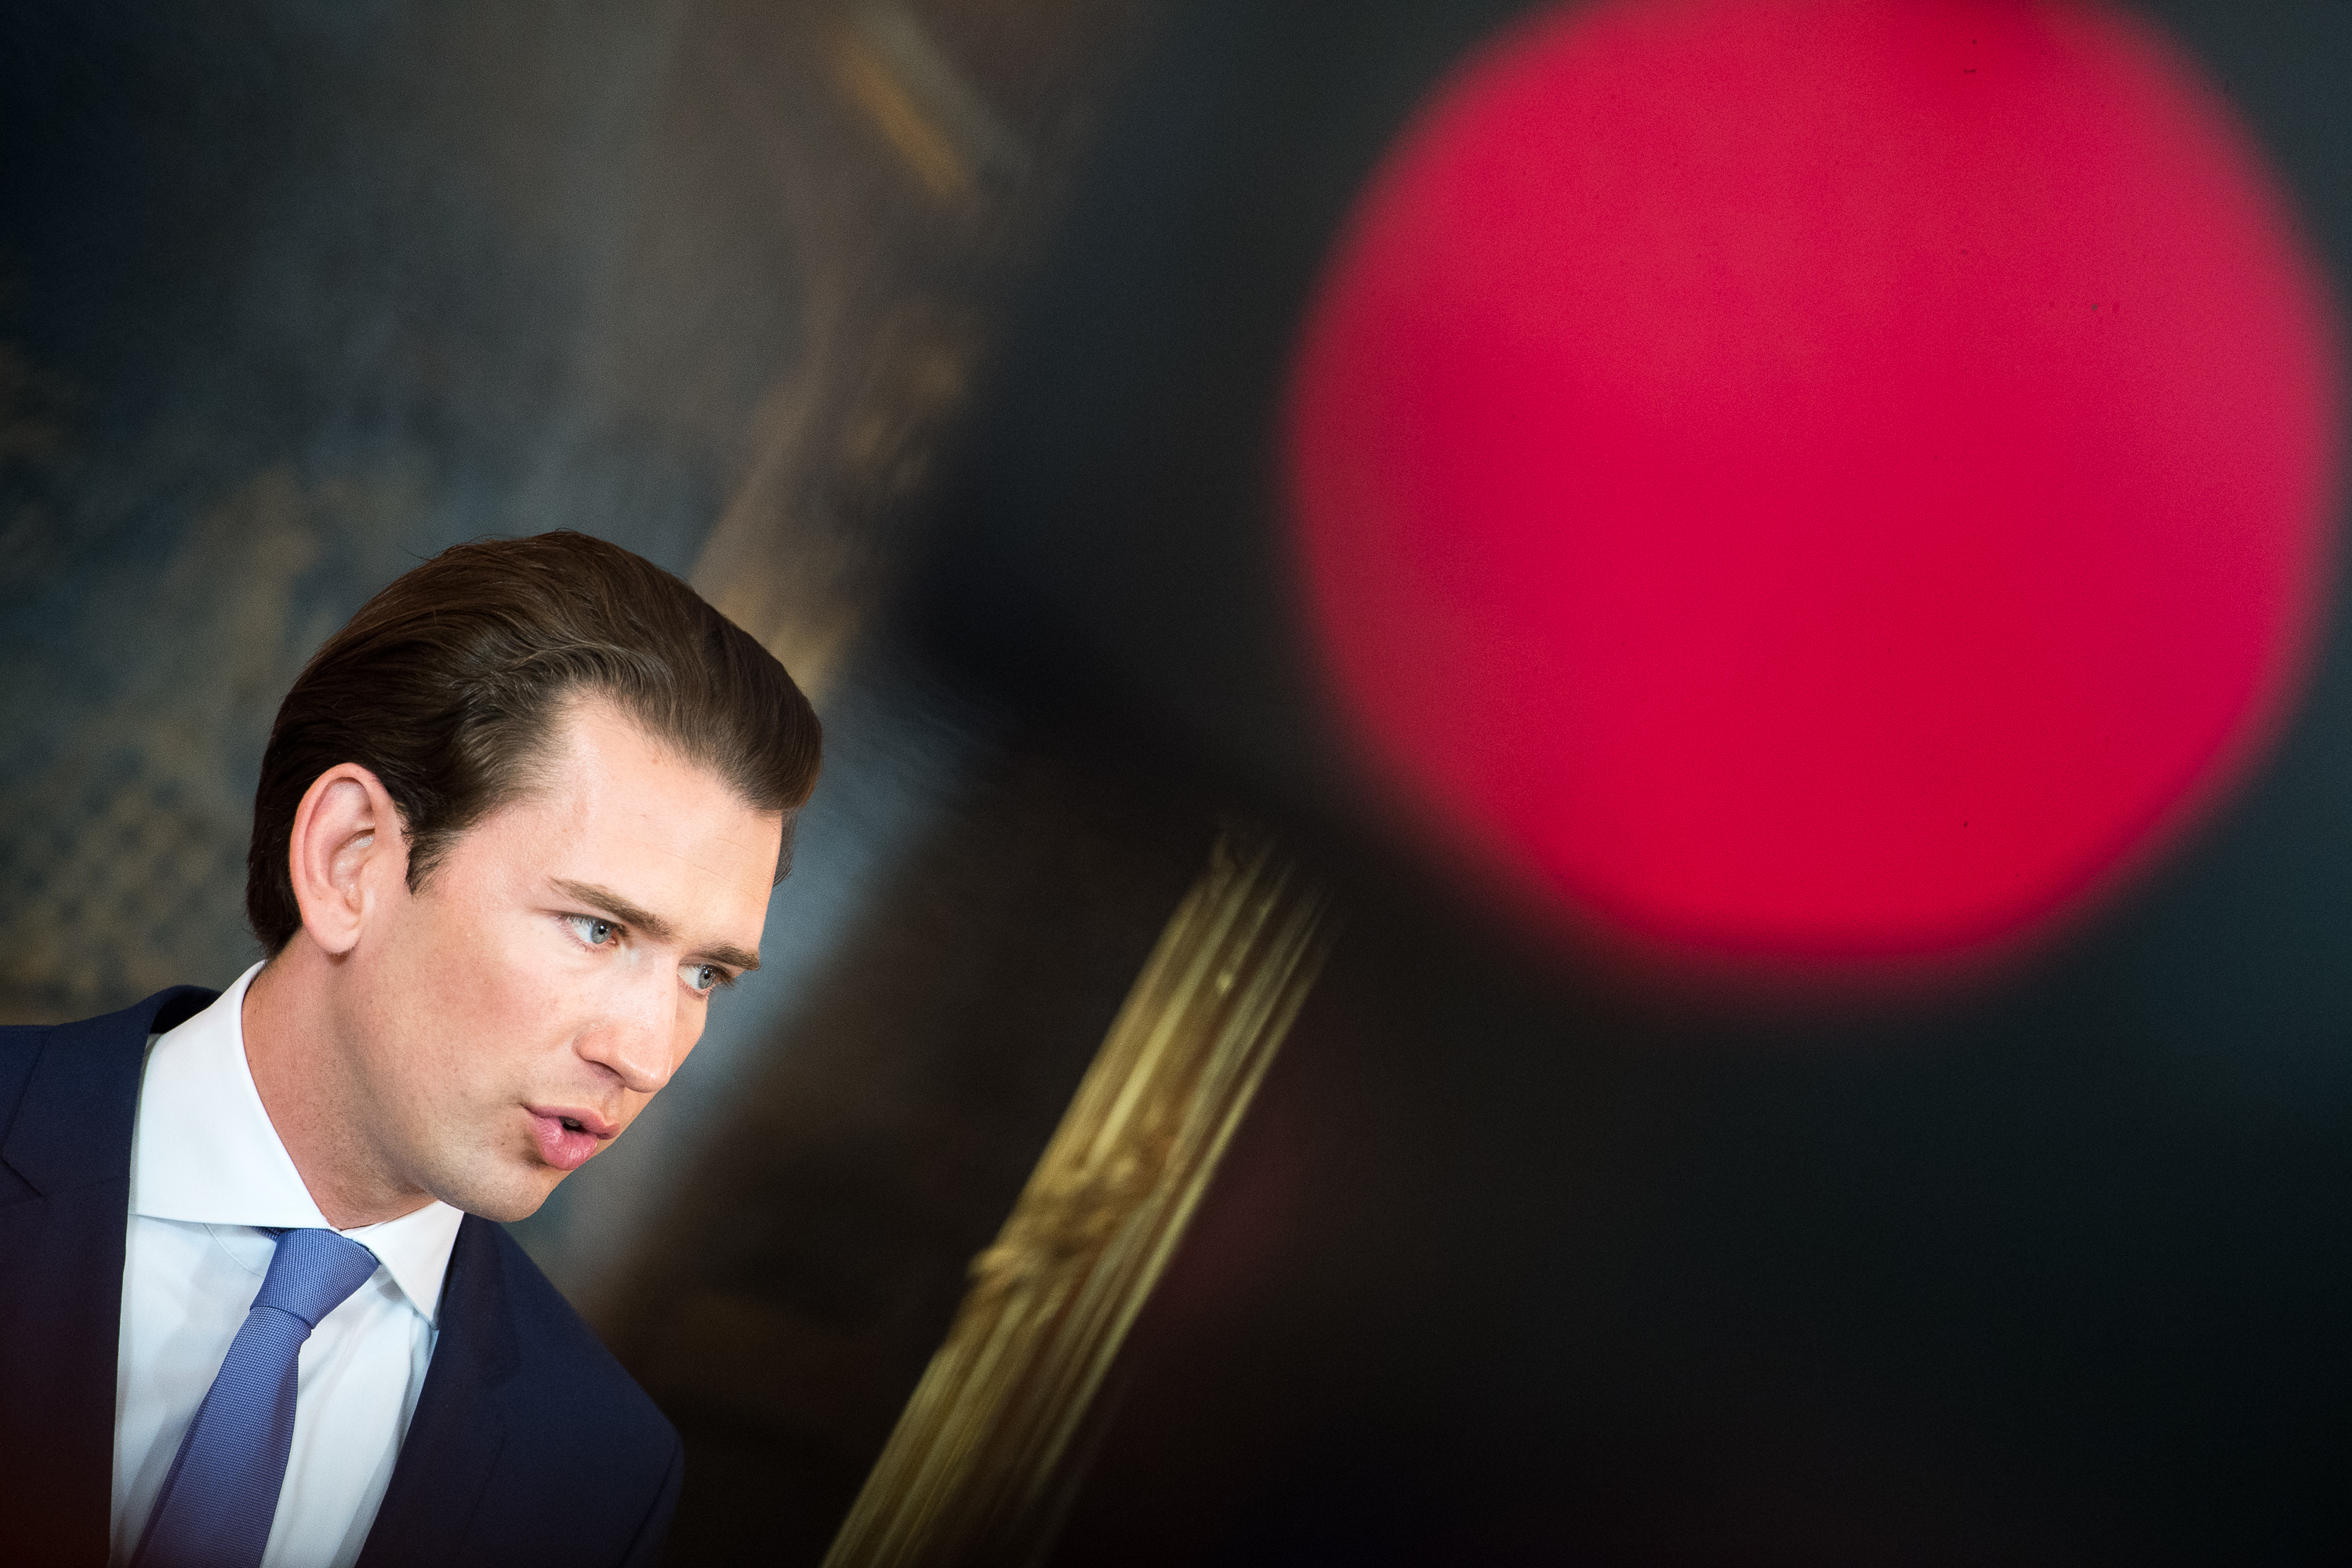 Austrian Chancellor Sebastian Kurz speaks to the media on May 19, 2019 in Vienna, Austria. He announced Austria will hold snap elections in September following the withdrawal by Kurz from the governing coalition.